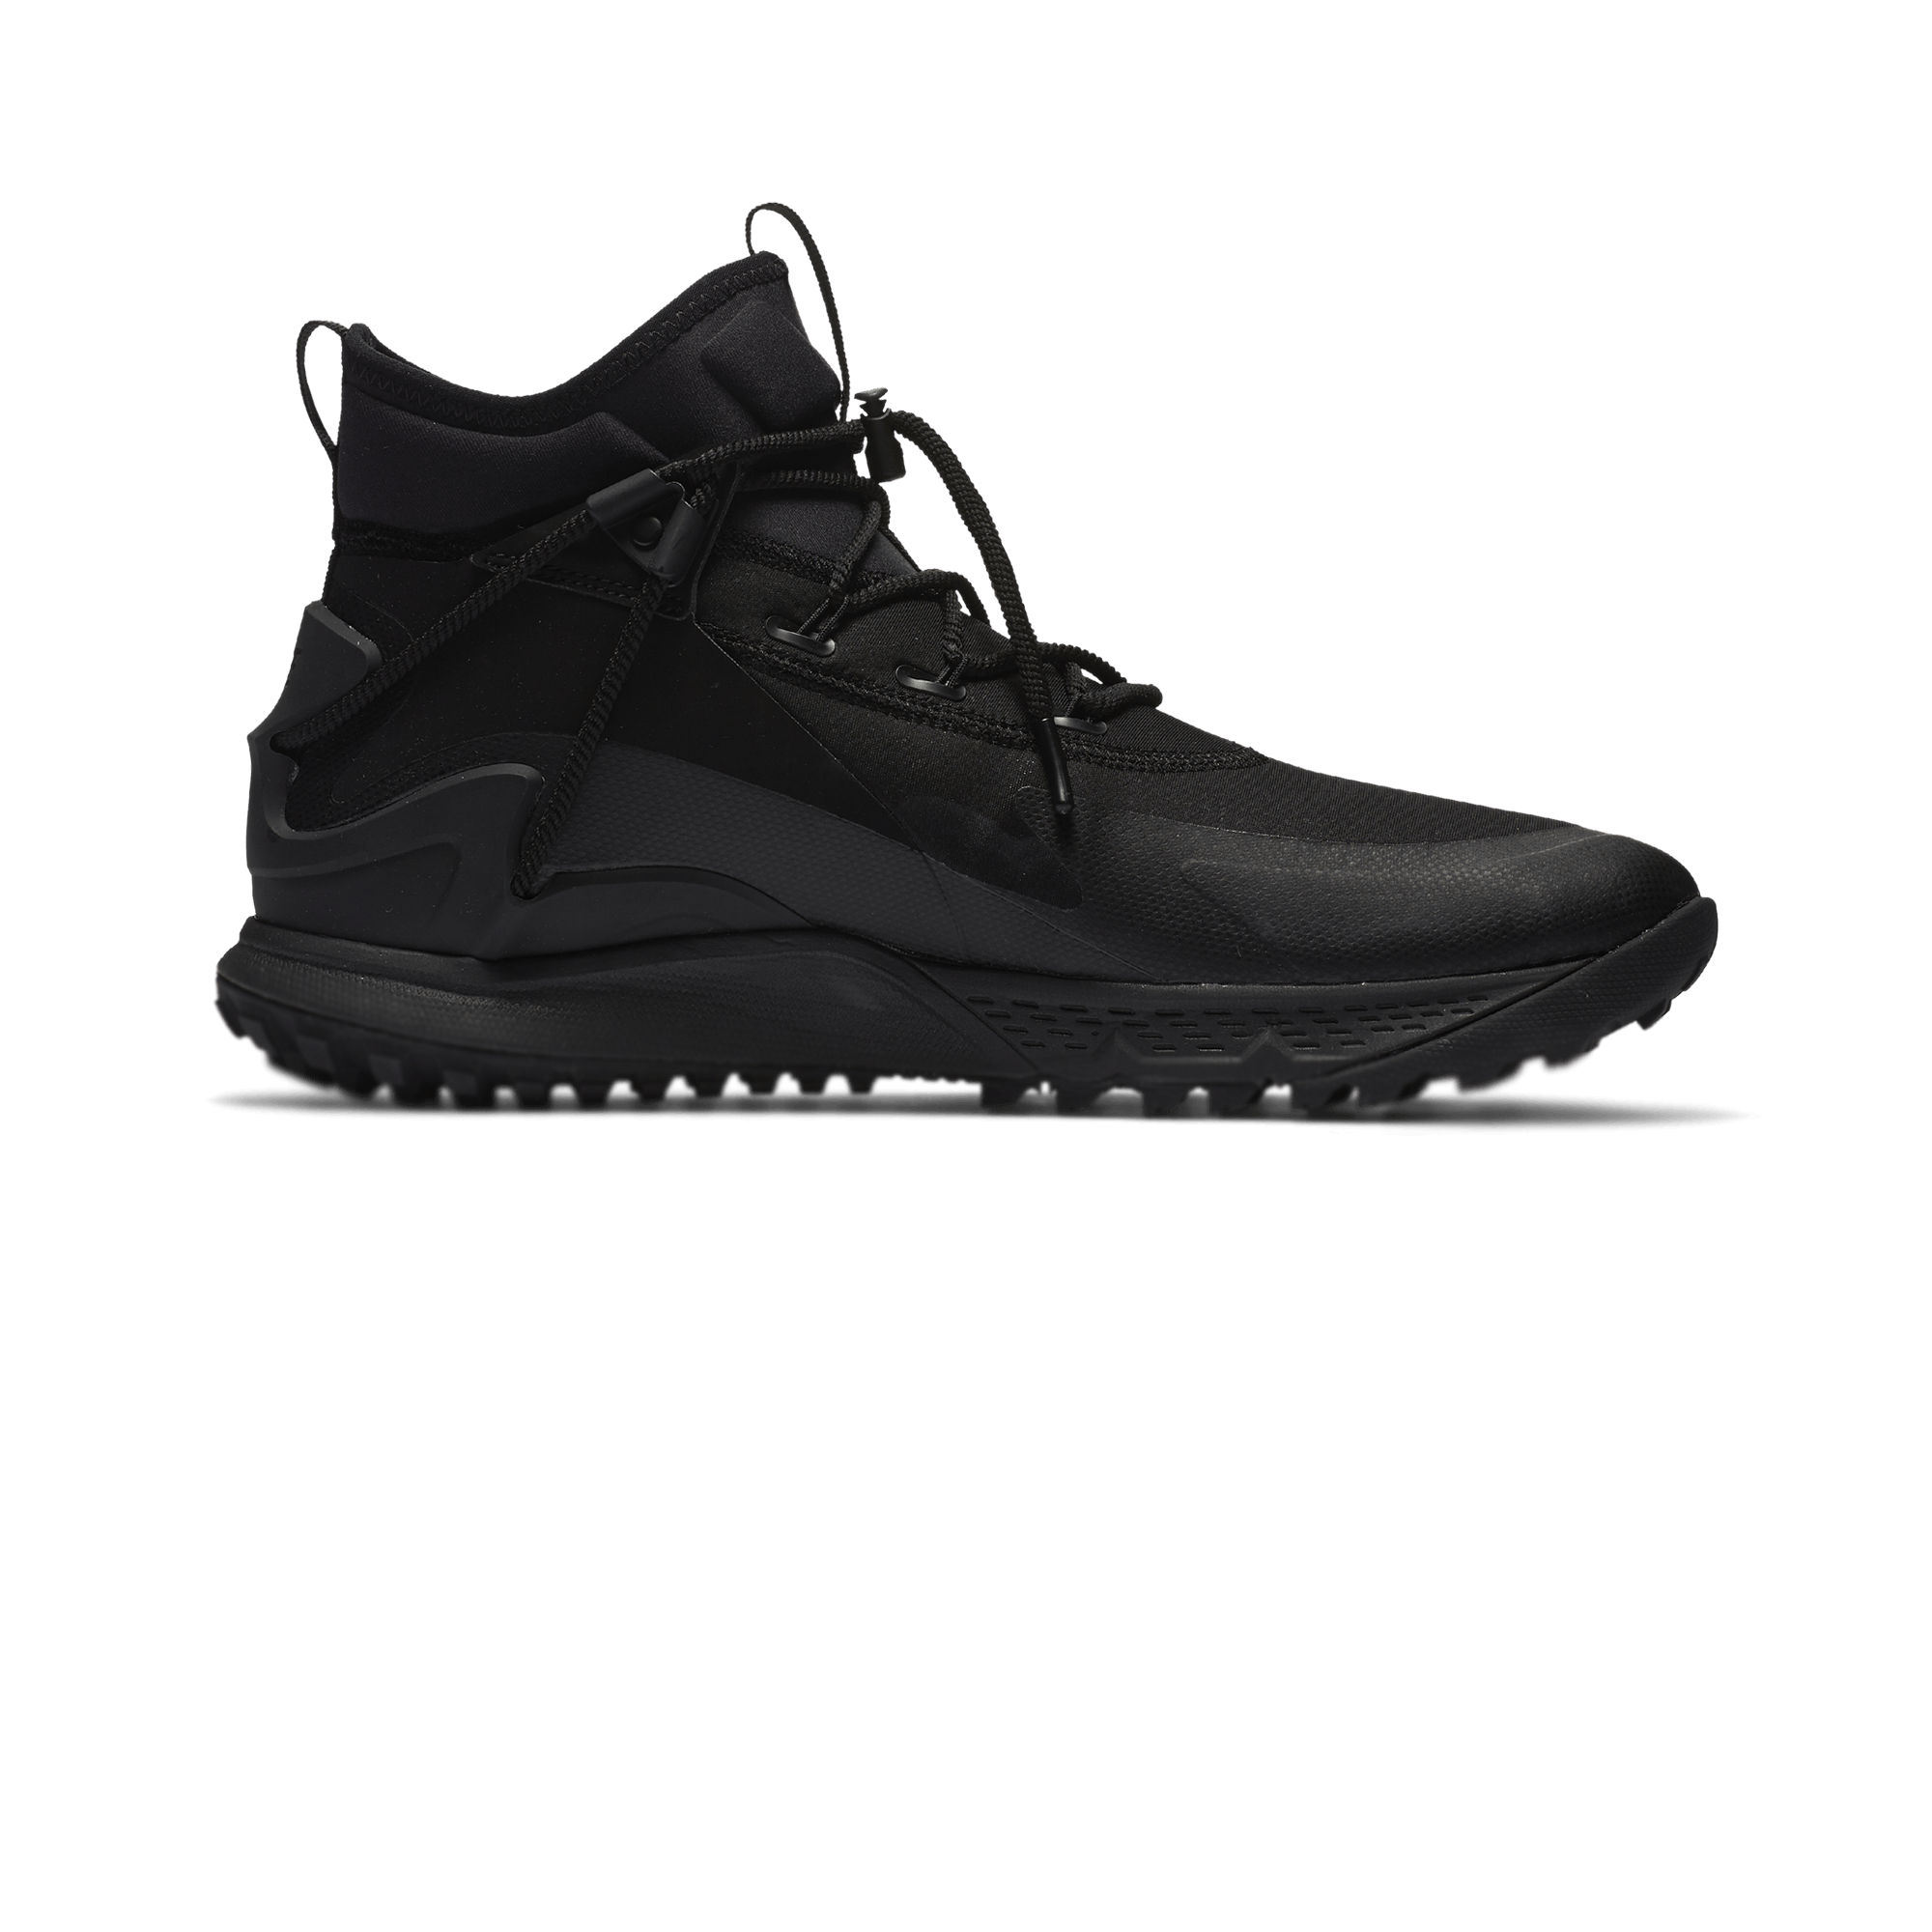 Terra Sertig Boot black/anthracite